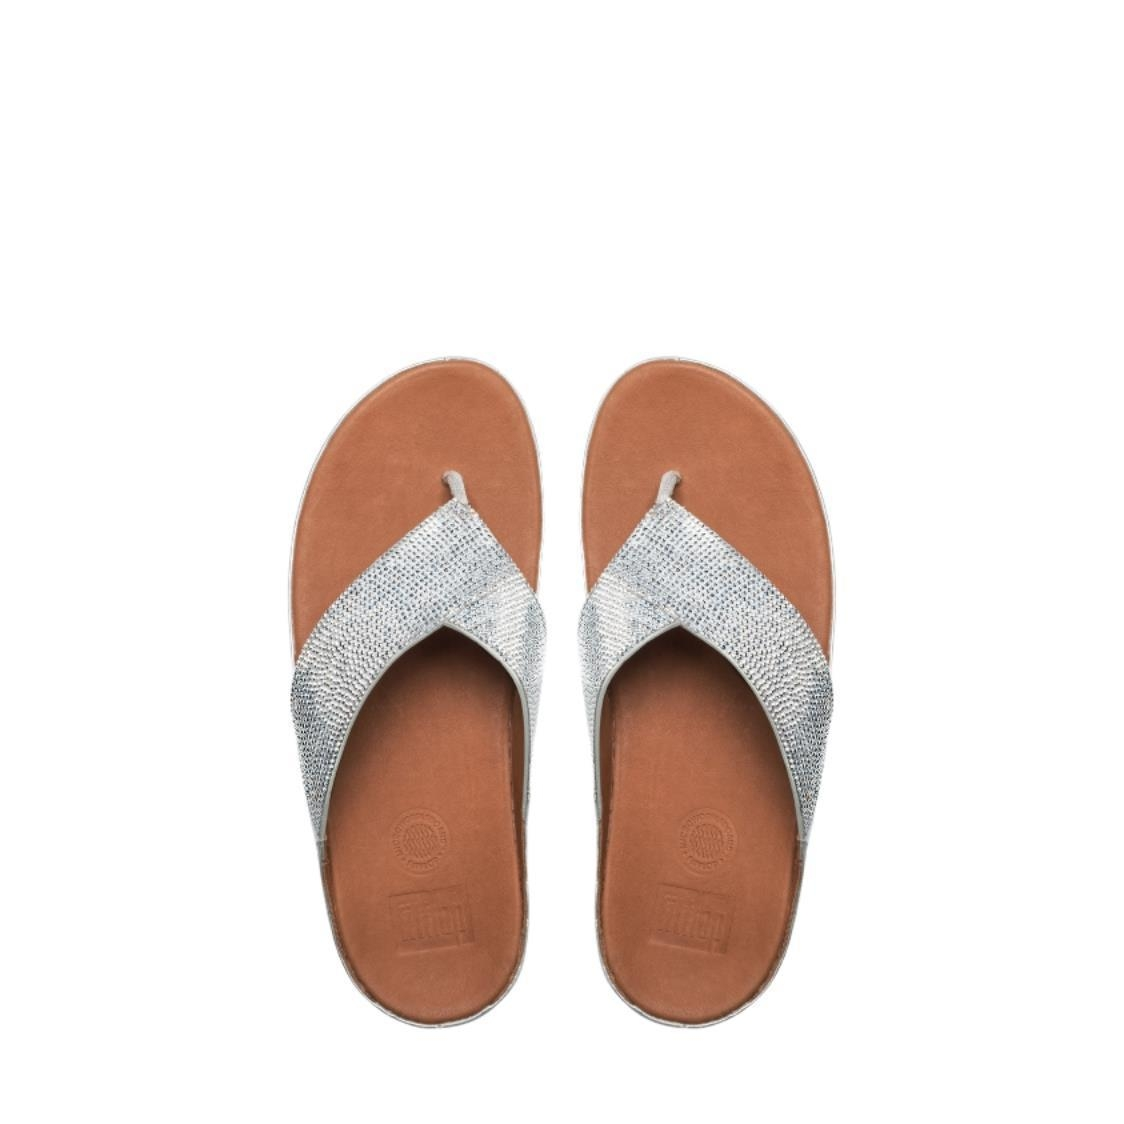 Crystall Toe-Thong Sandals Silver